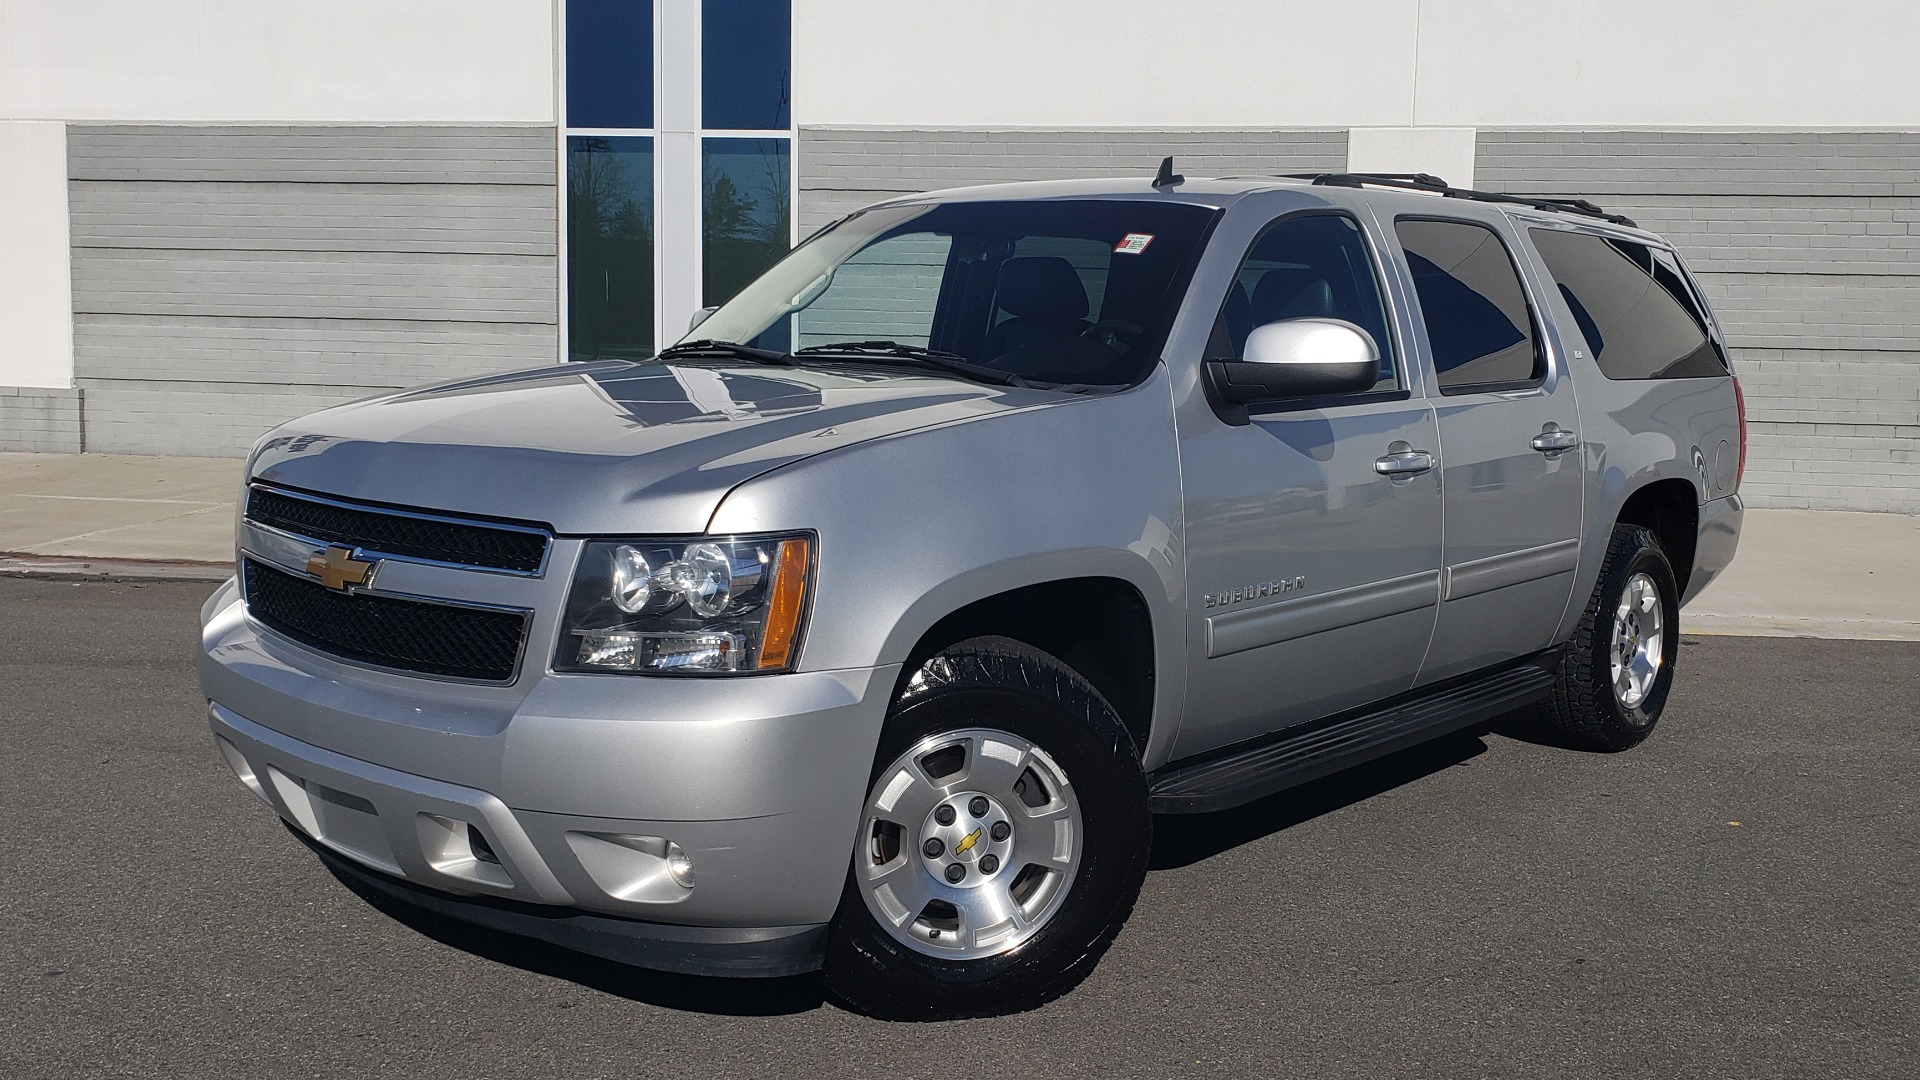 Used 2013 Chevrolet SUBURBAN LT / 2WD / 5.3L V8 / 6-SPD AUTO / LEATHER 3-ROW SEATS for sale Sold at Formula Imports in Charlotte NC 28227 1